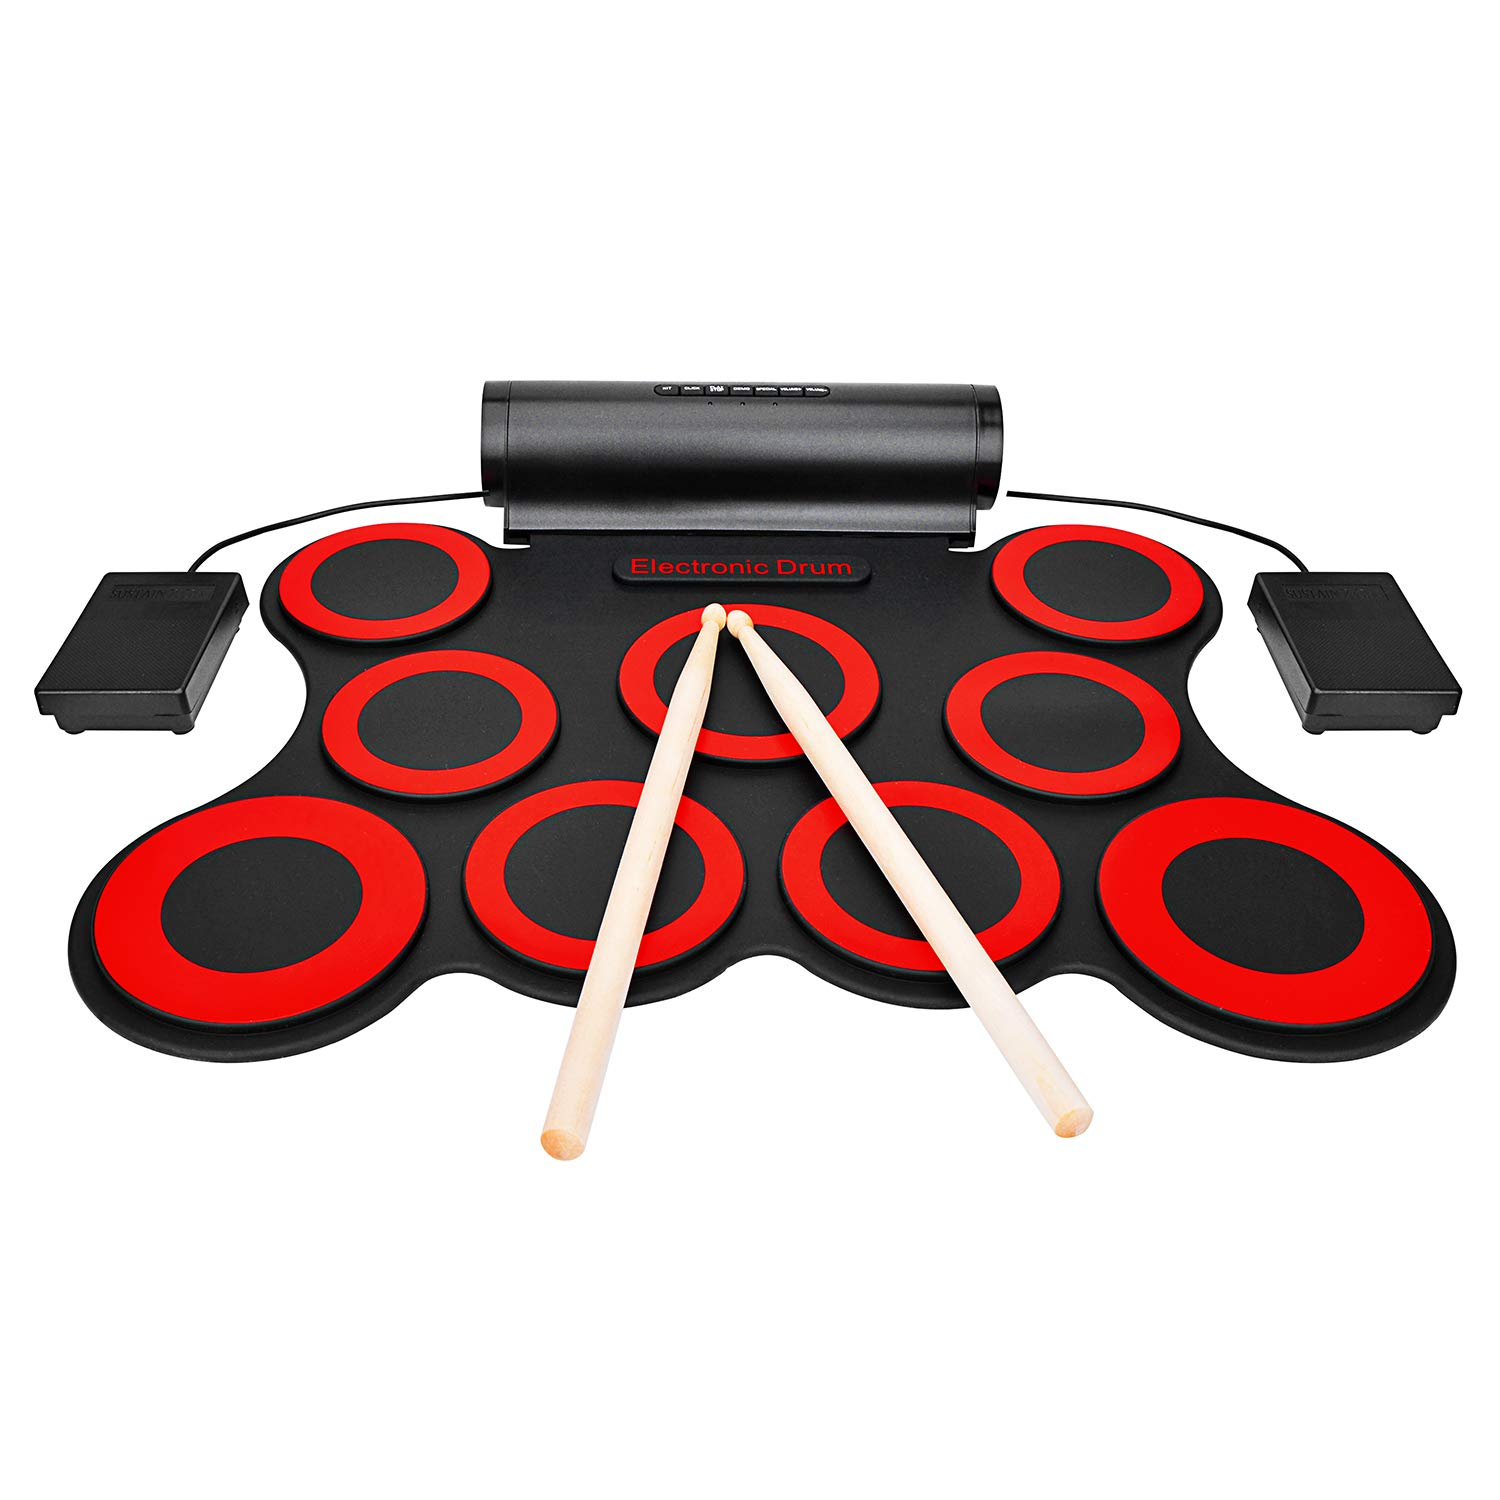 9-button Electronic Drum Set With Headphone Jack Built-in Speaker and Battery Drum Sticks Pedals Christmas Holiday Birthday Gift